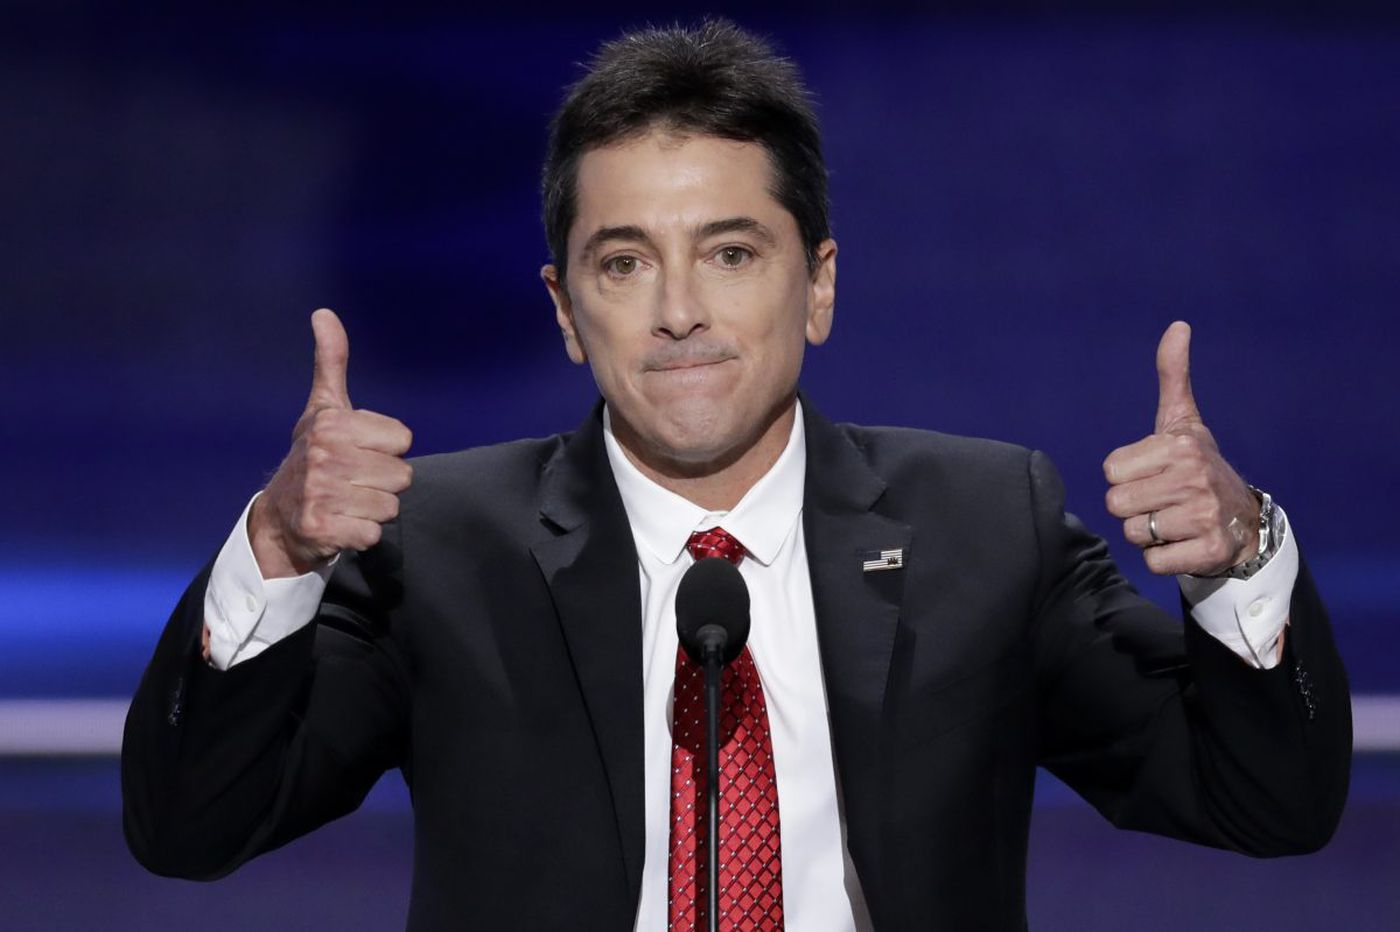 Scott Baio questions if grieving Sandy Hook, Charlottesville moms were actors - then takes it back